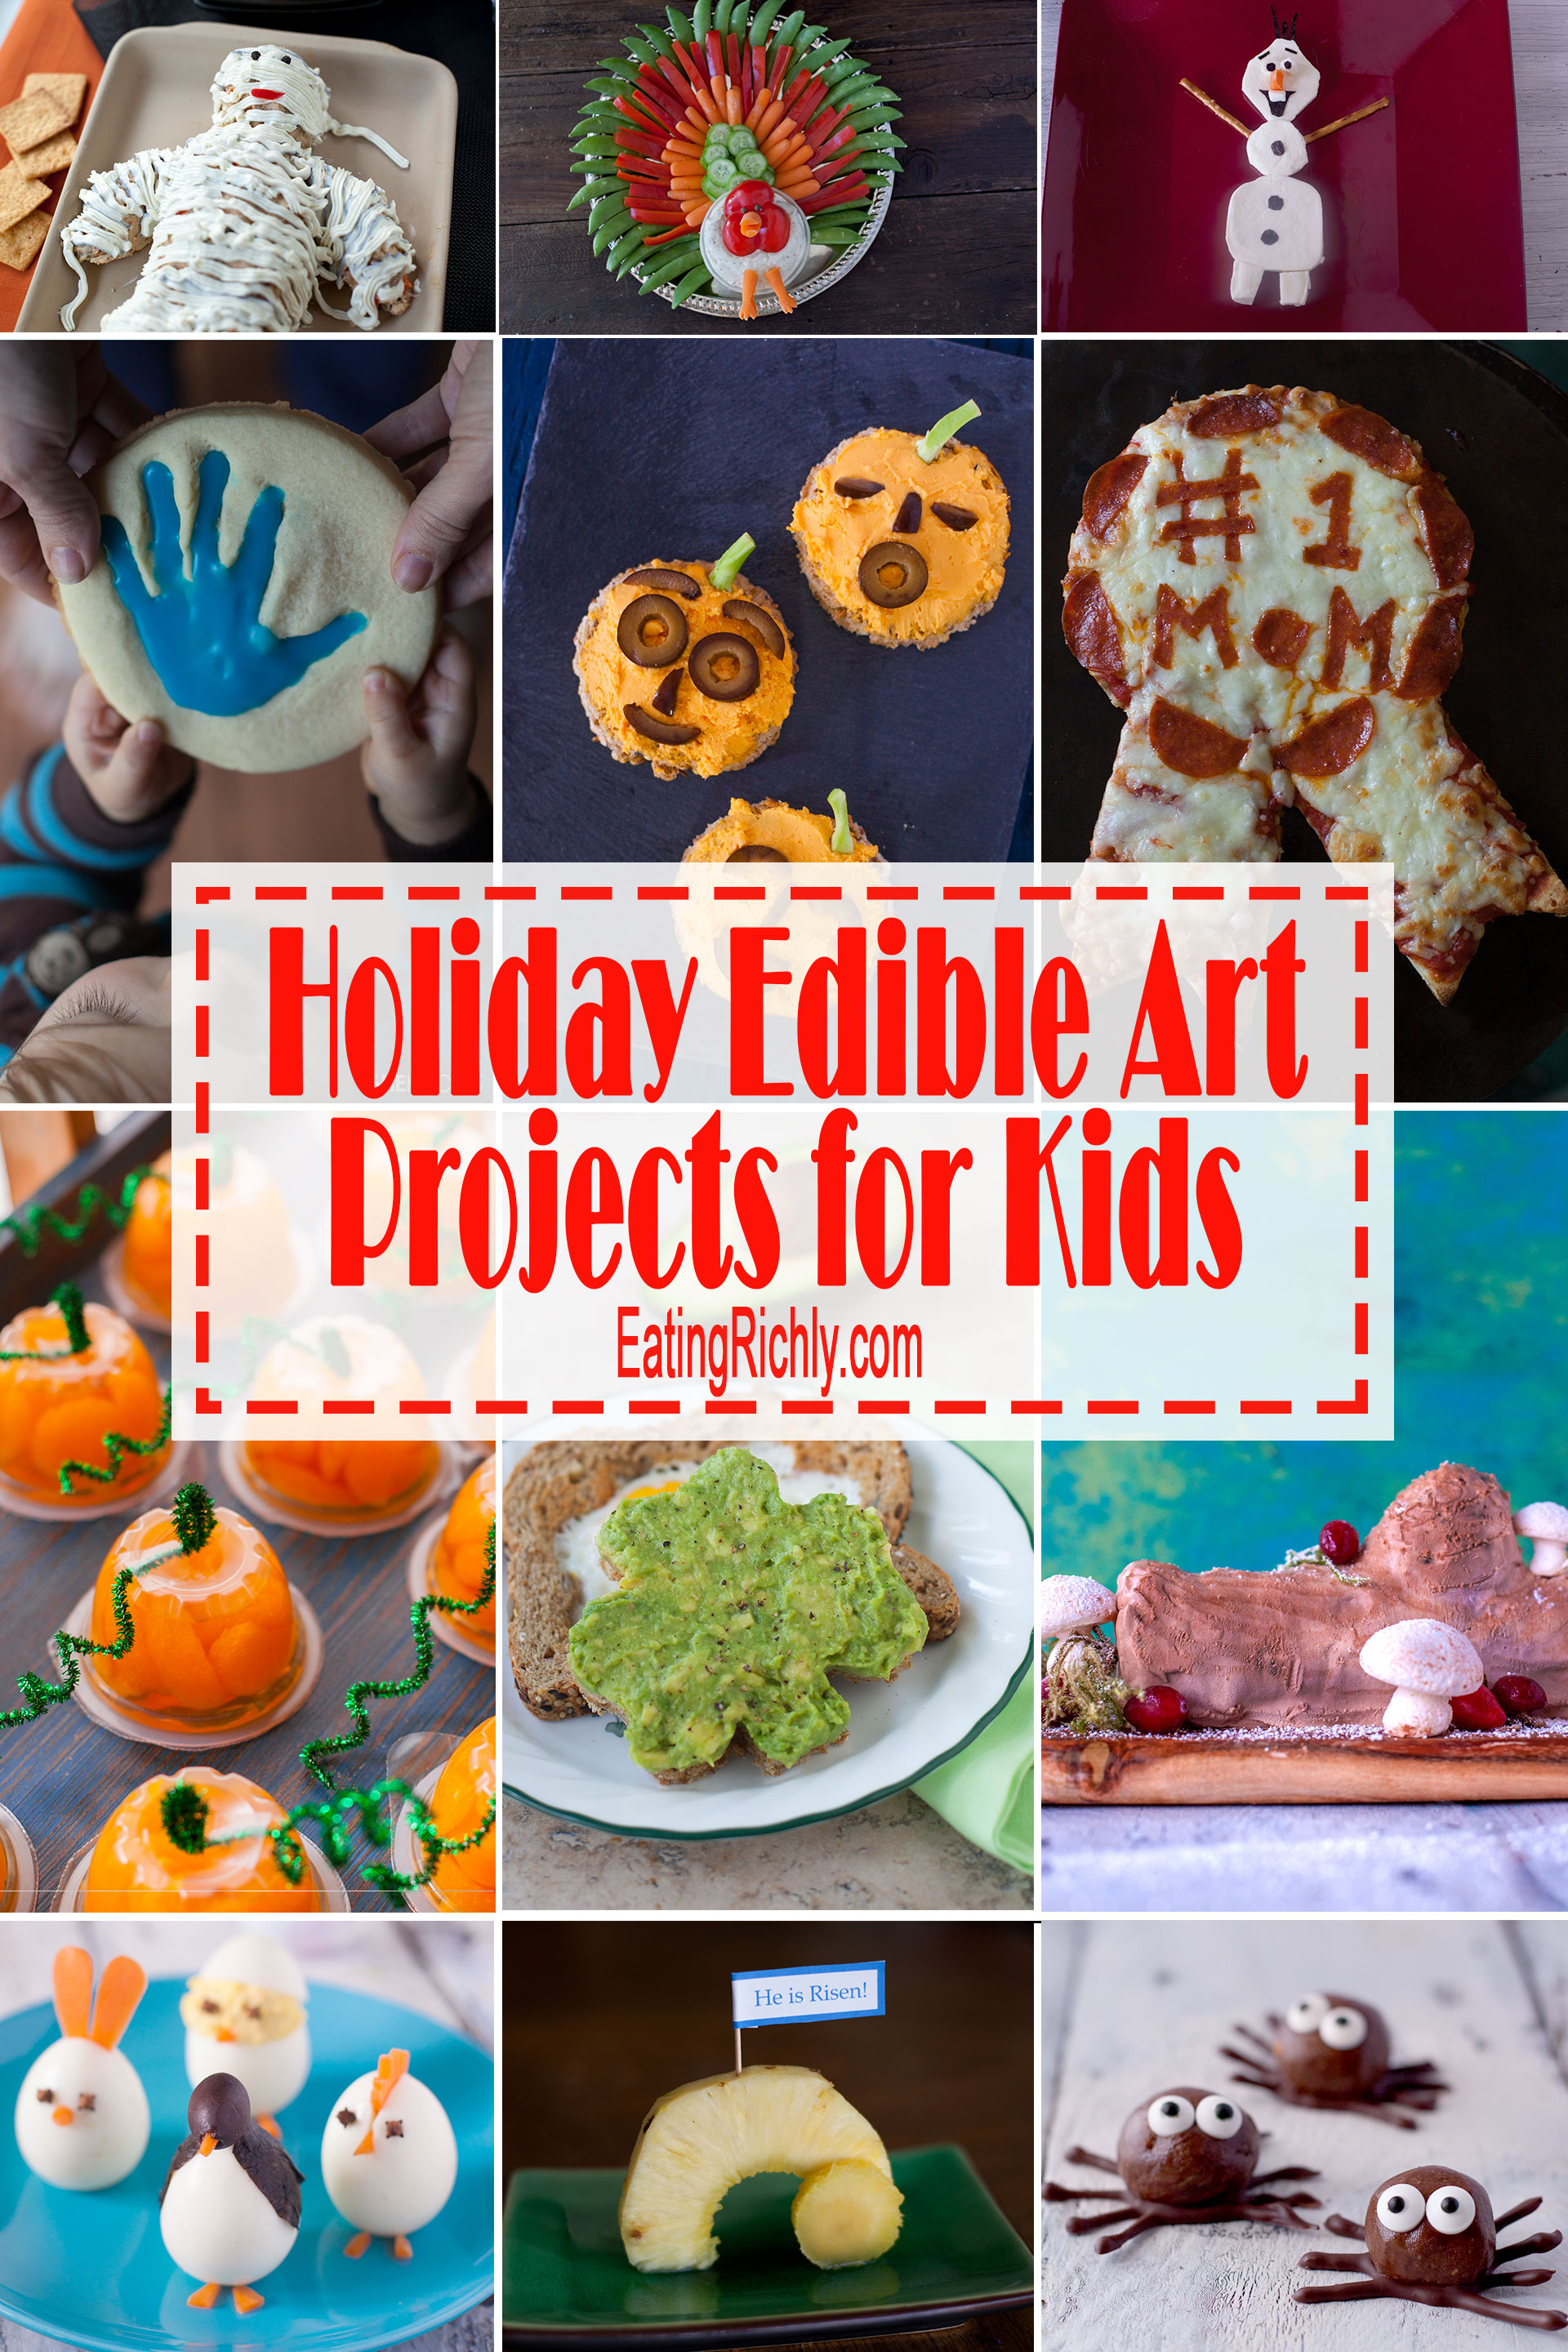 edible art projects for holidays (kid friendly!) - eating richly